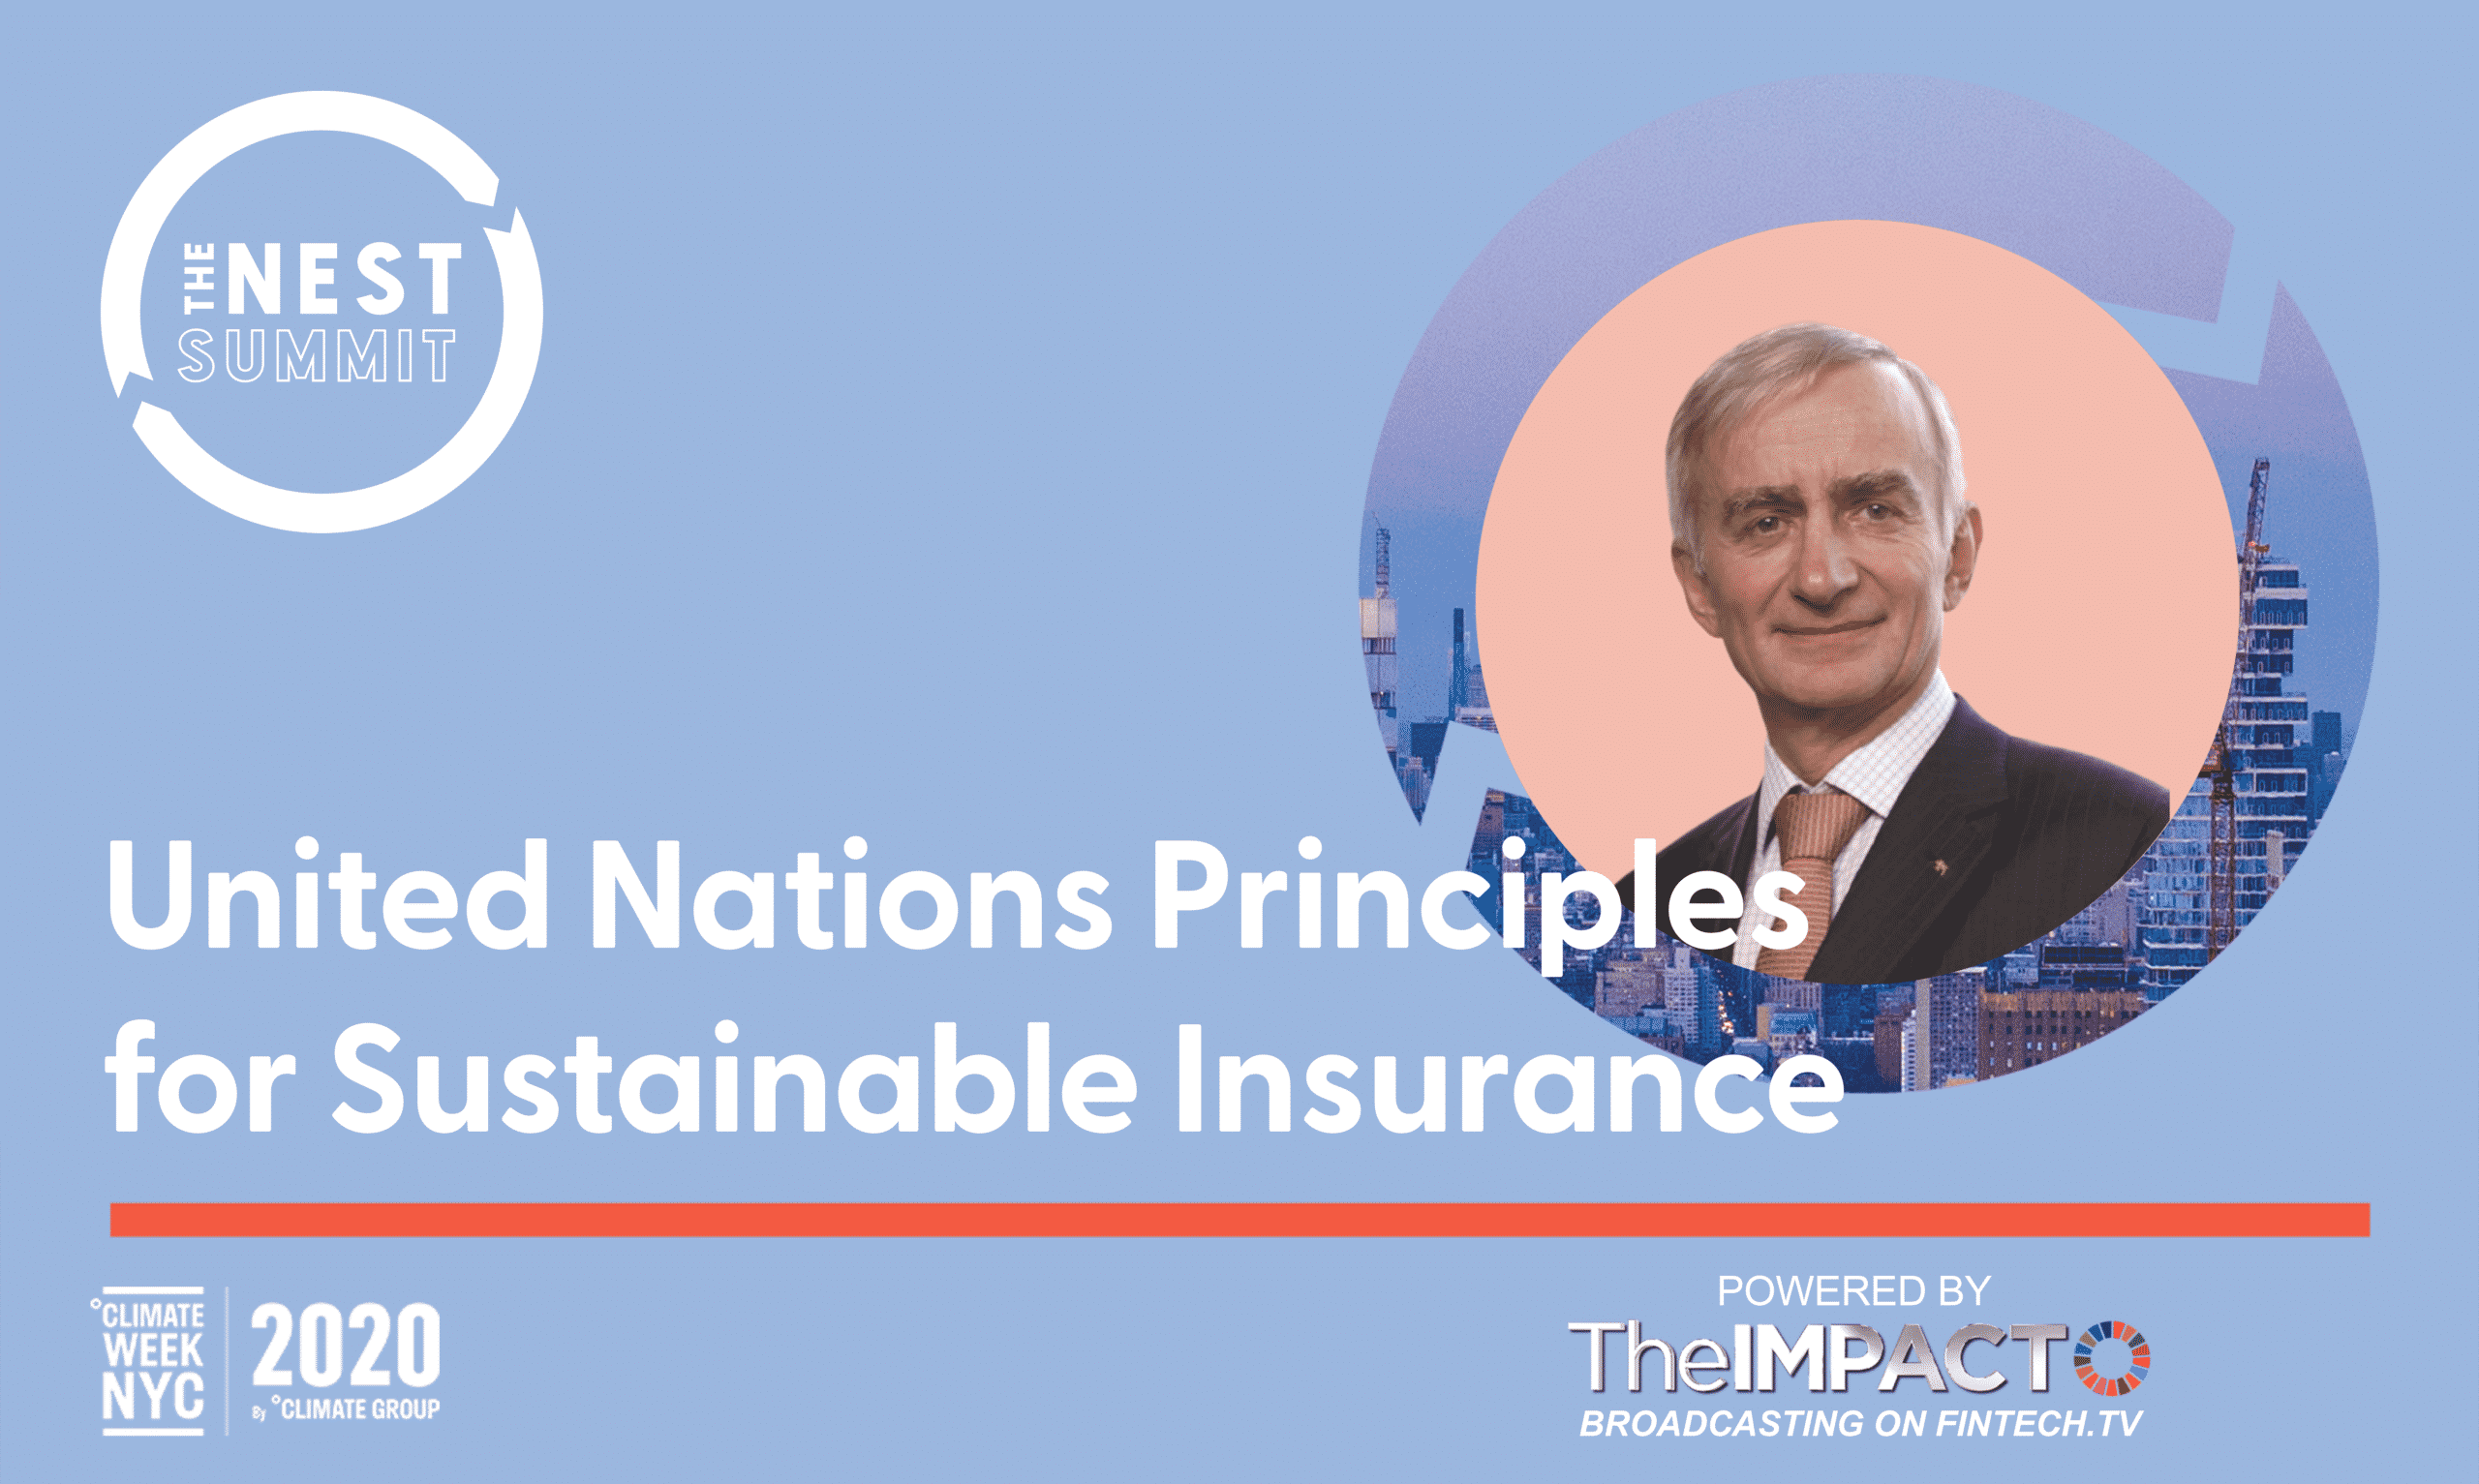 United Nations Principles for Sustainable Insurance with Denis Duverne